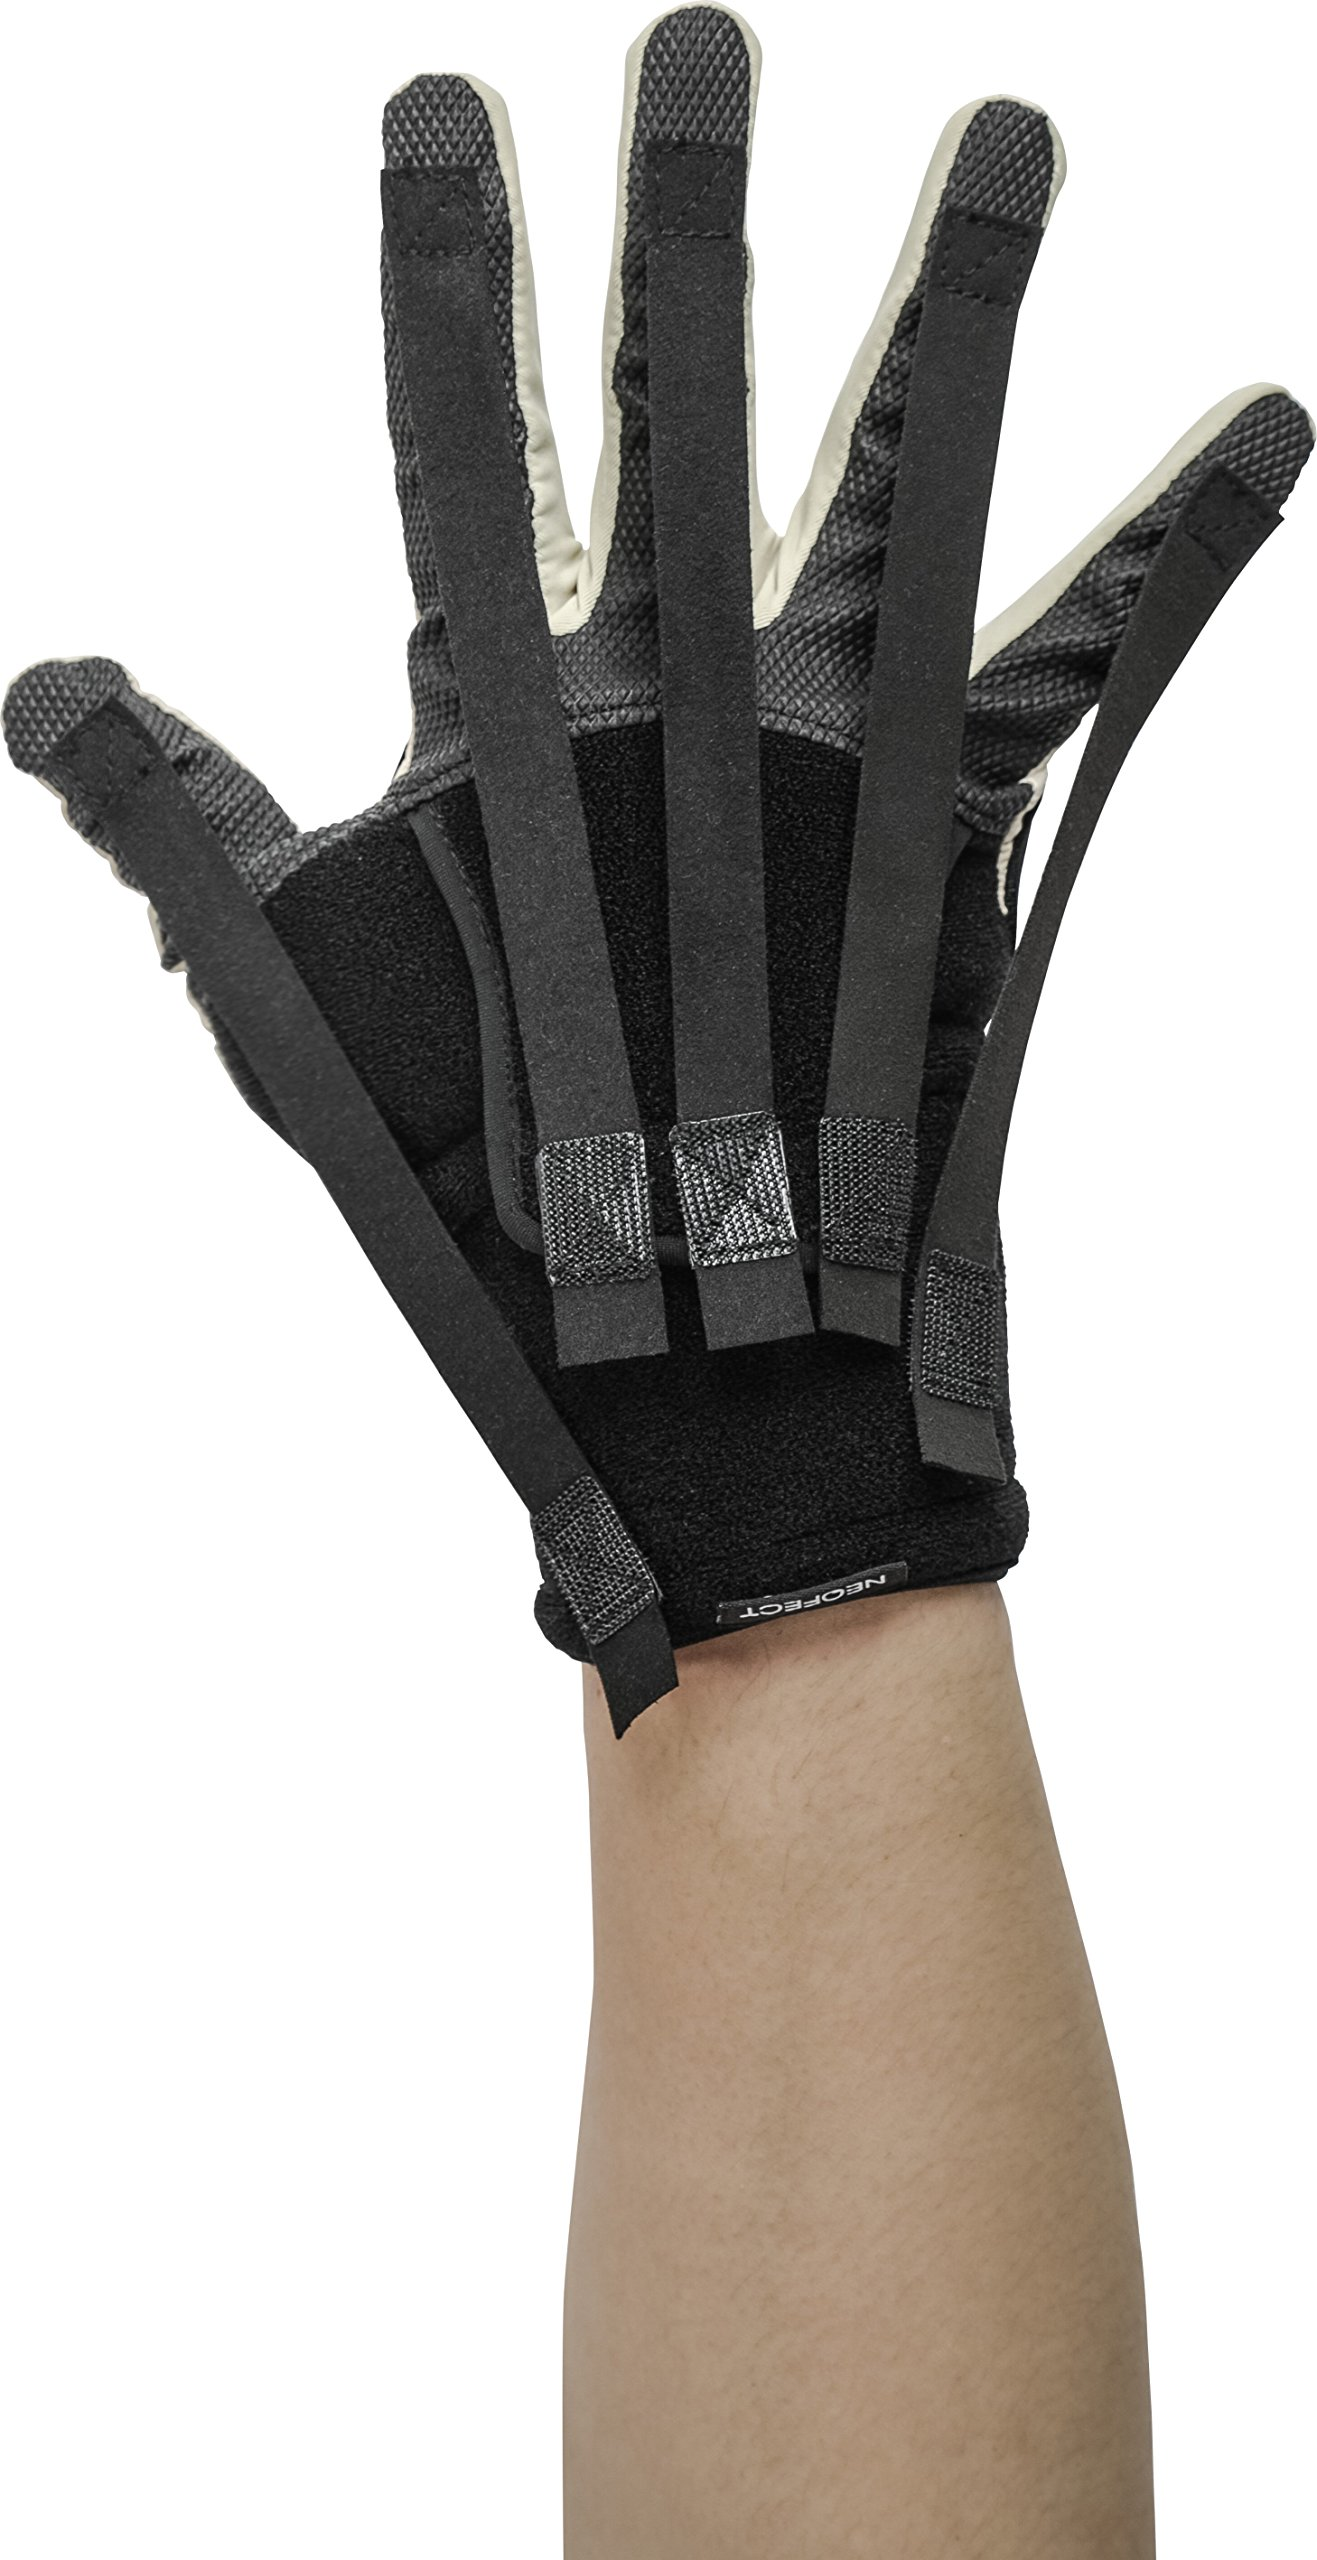 NEOFECT Extender - Hand & Wrist Positioning Brace for Stroke, SCI, TBI (minimize-Spasticity & Maintain Stretch) (Medium, Right) by NEOFECT (Image #5)